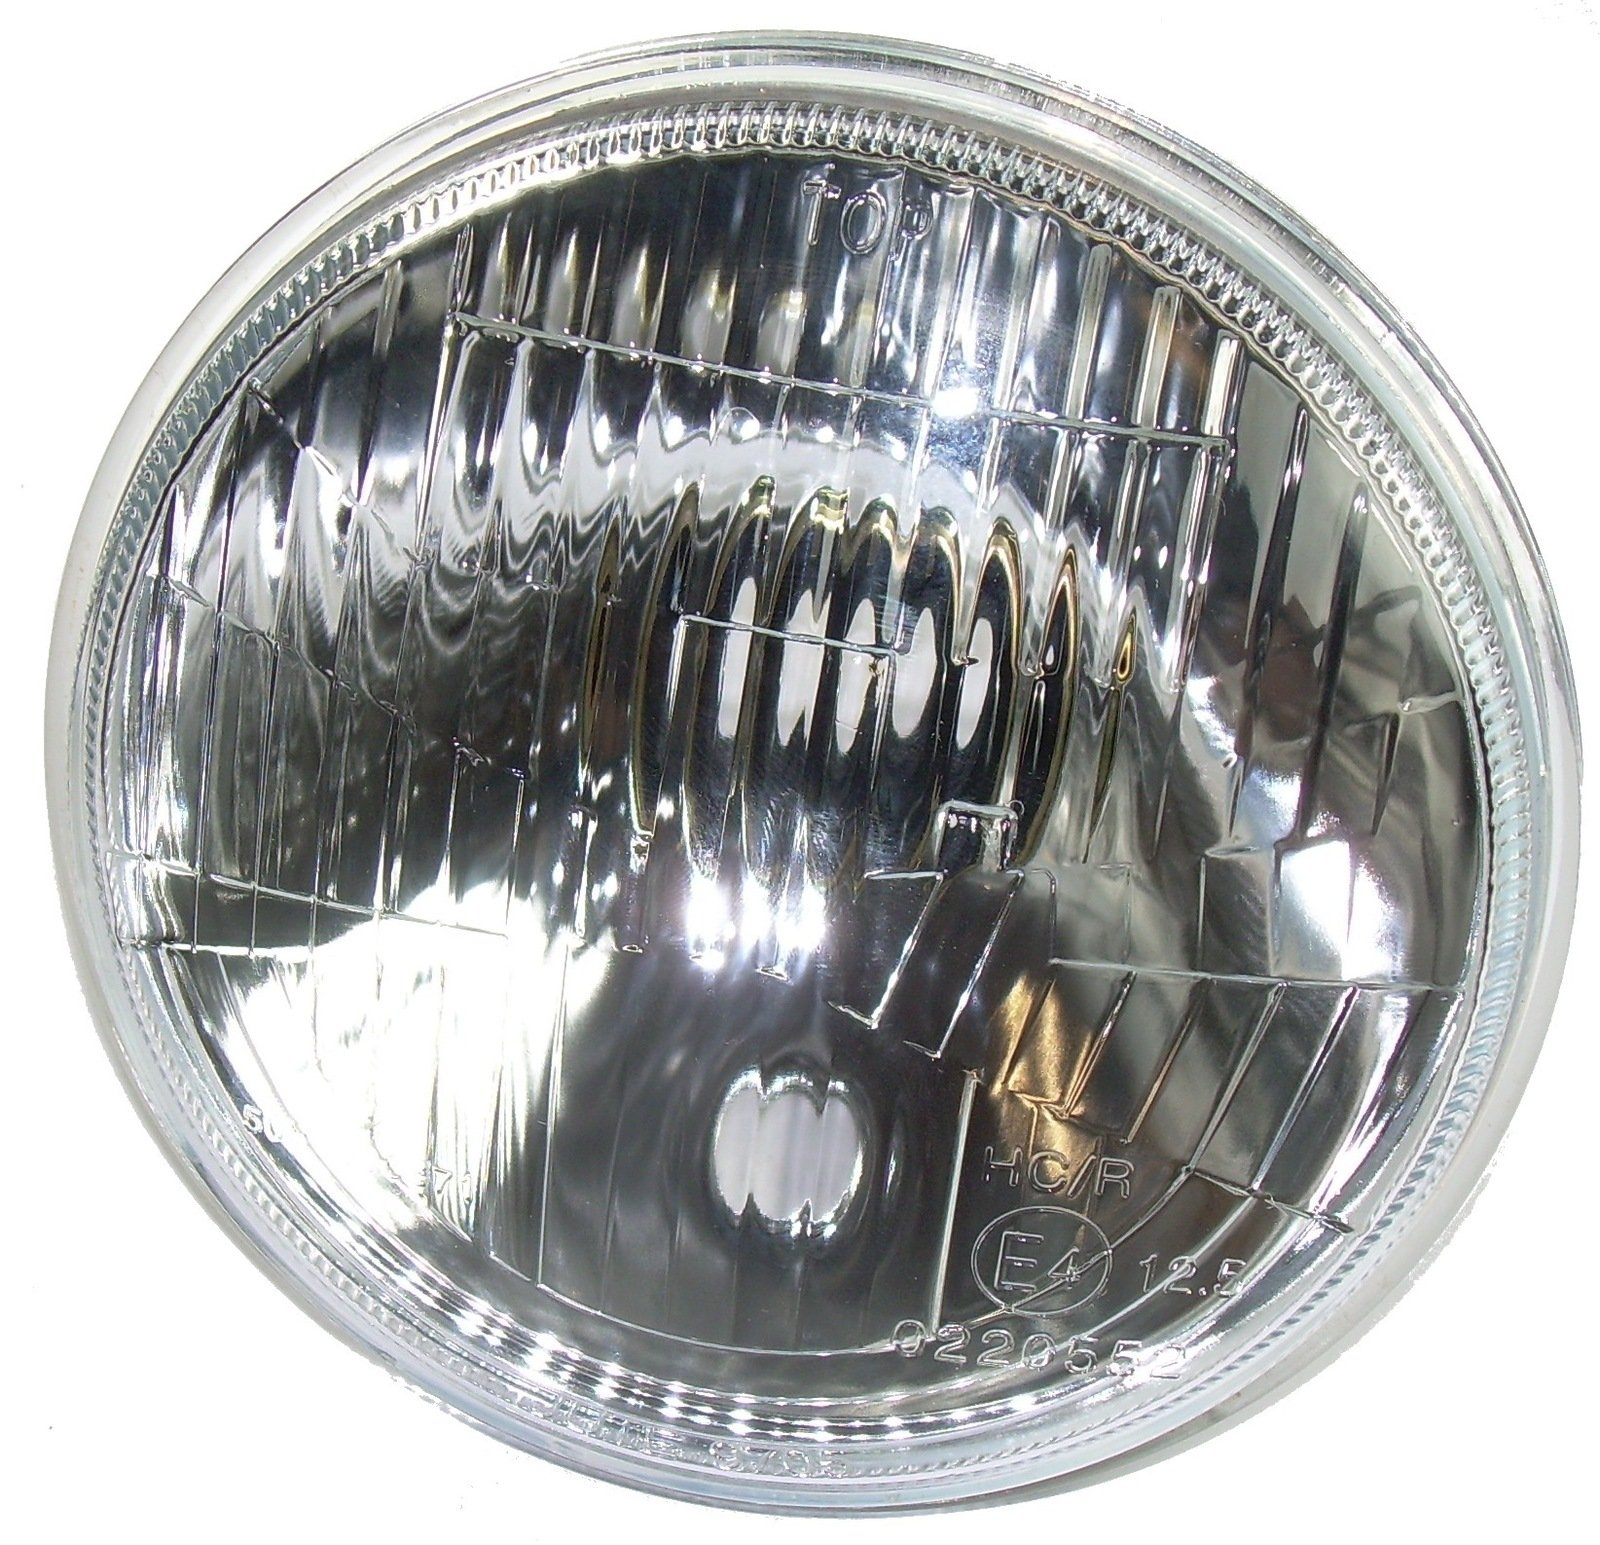 Yamaha XT500 XT250 H4 Headlight with Parking Light H4-Spring Terminal w/ Rubber Cap